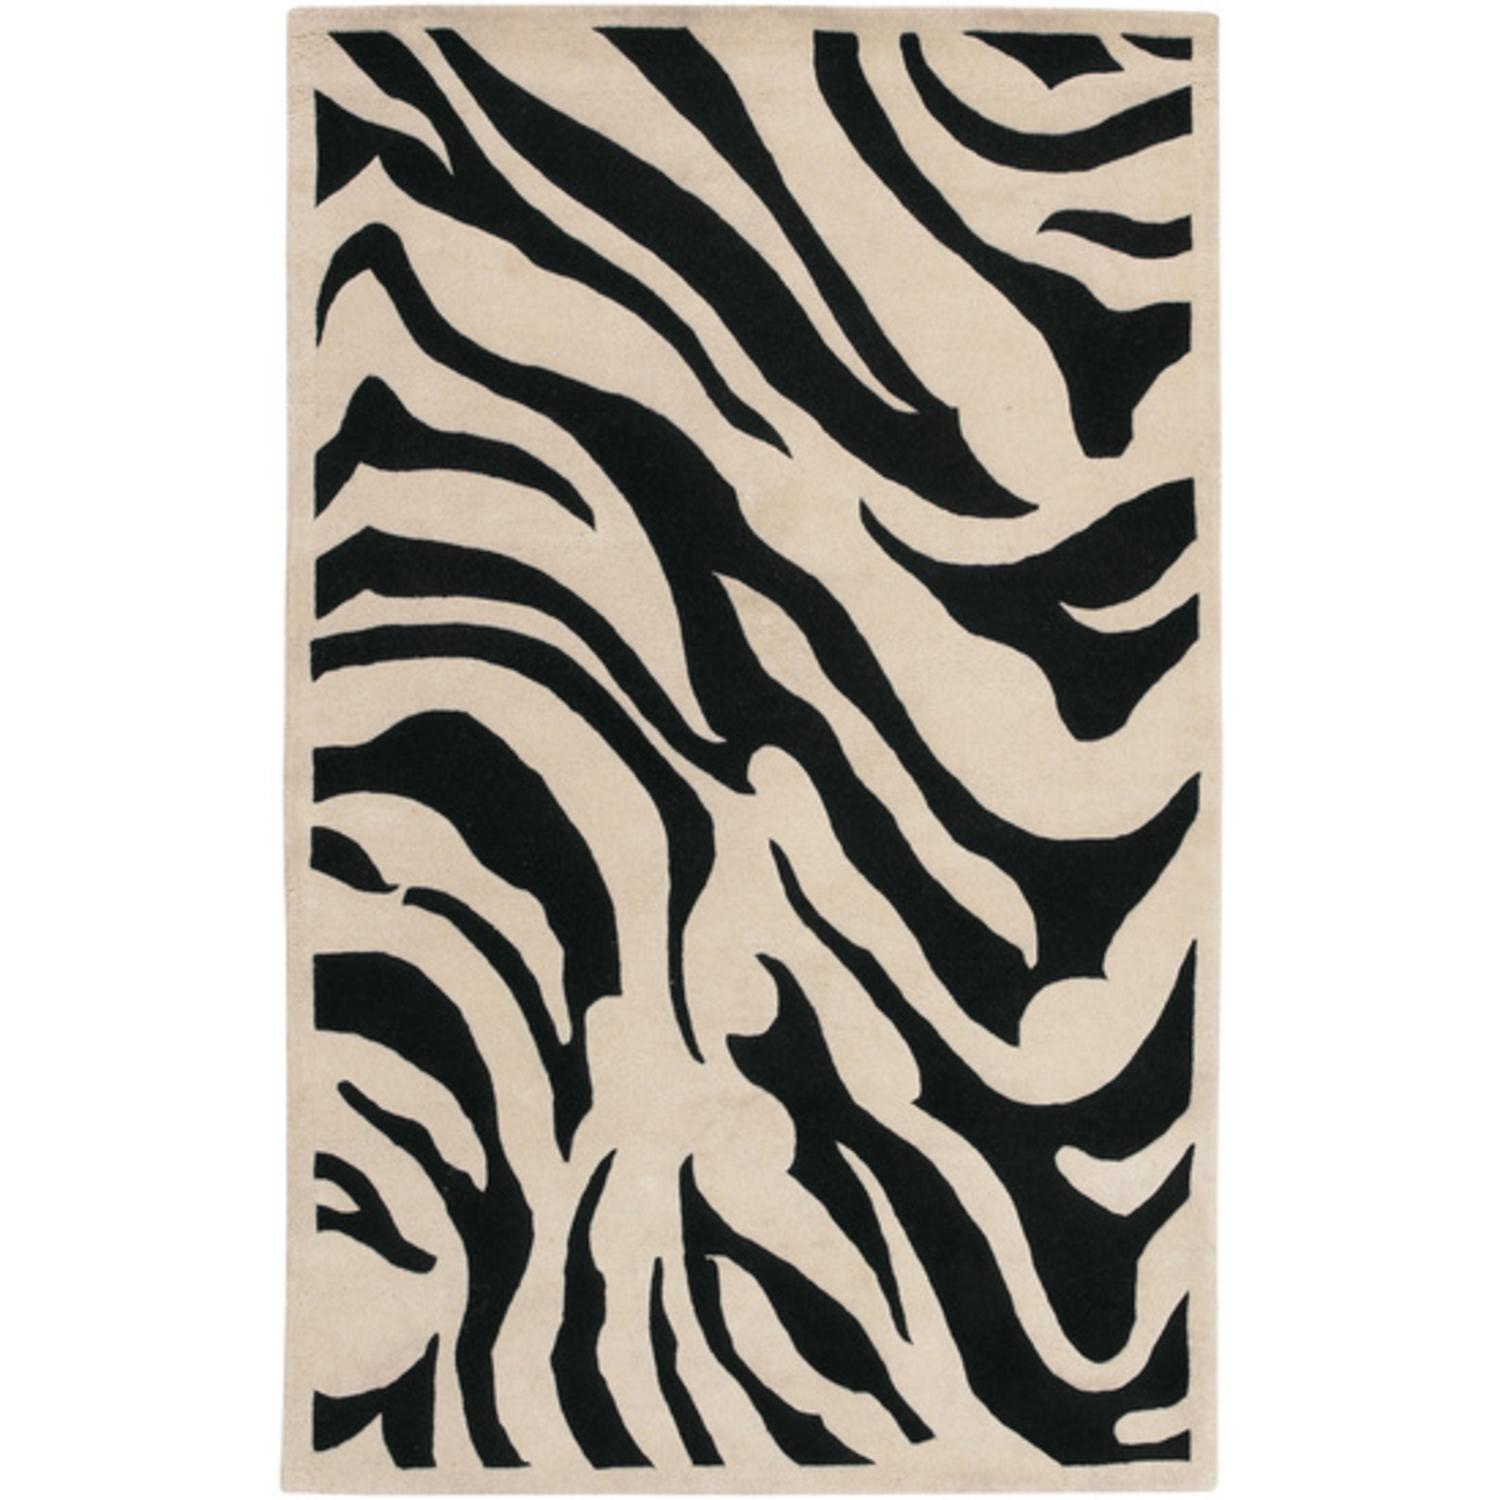 5' x 8' Zebra Animal Print Coal Black and Parchment Wool Area Throw Rug